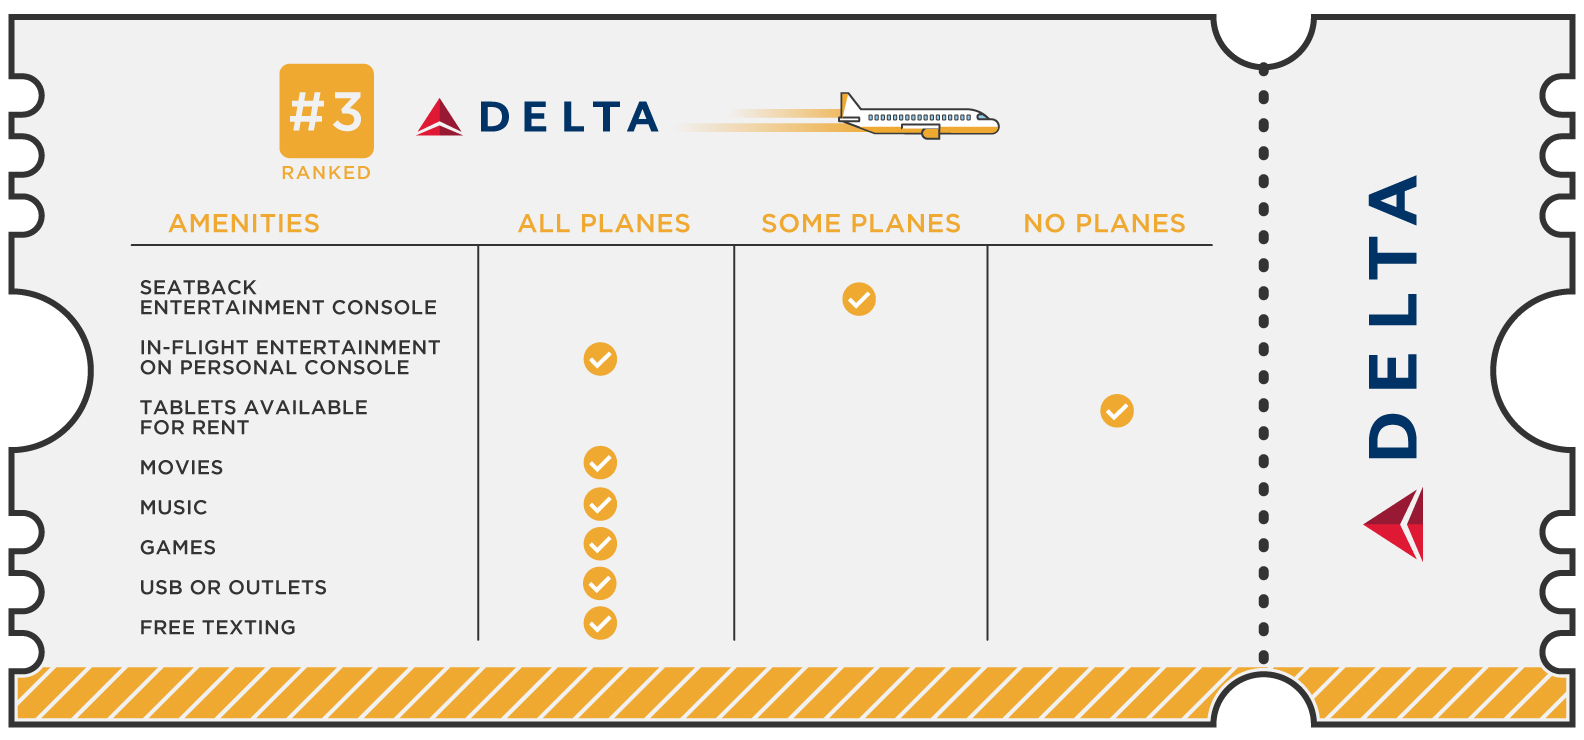 Delta placed third and ranked high for its movie, television, and premium channel offerings, like HBO and Showtime. (Image: CableTV.com)